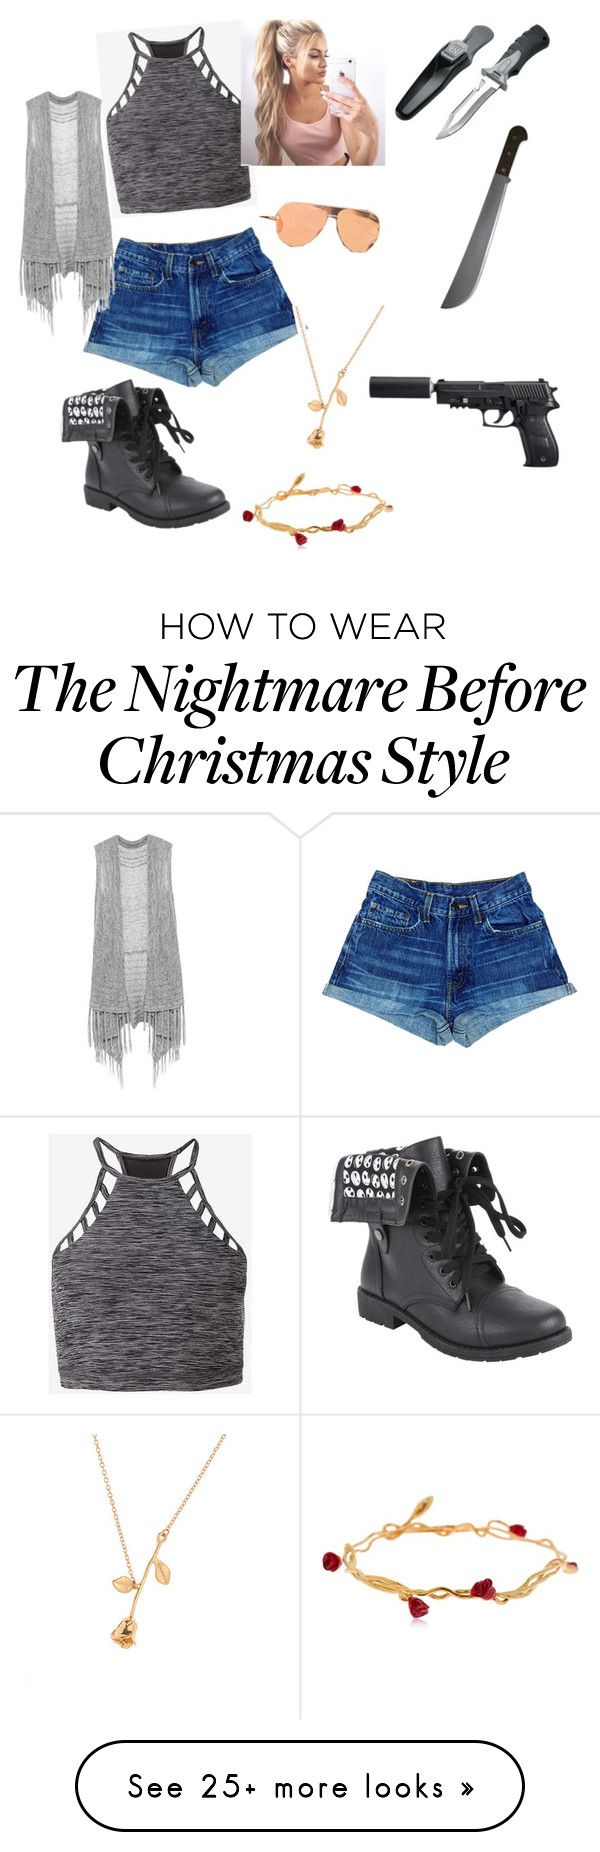 """Untitled #118"" by kaykaythebabygirl on Polyvore featuring Express, Quay, Futuro Remoto and Hot Topic"